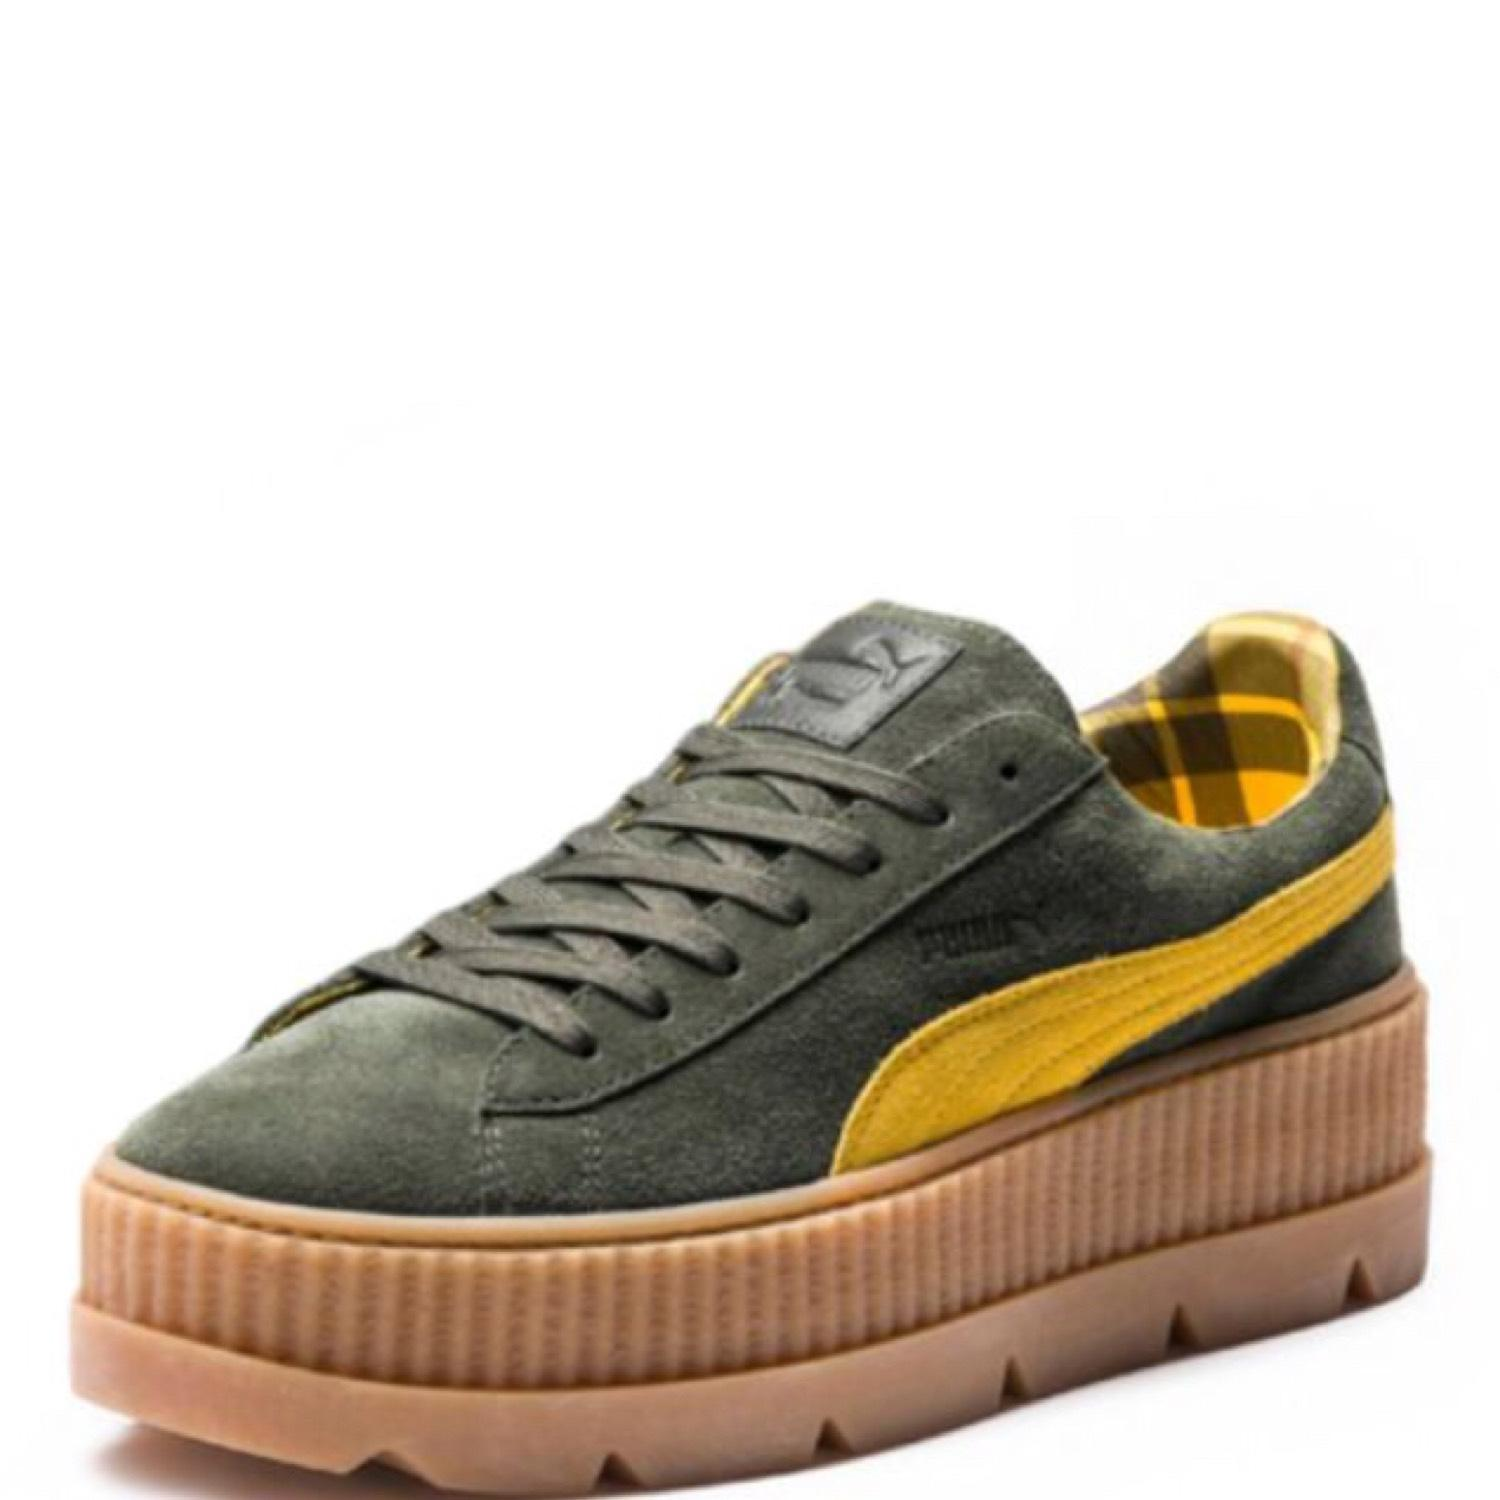 fenty by rihanna cleated creeper athletic shoes on